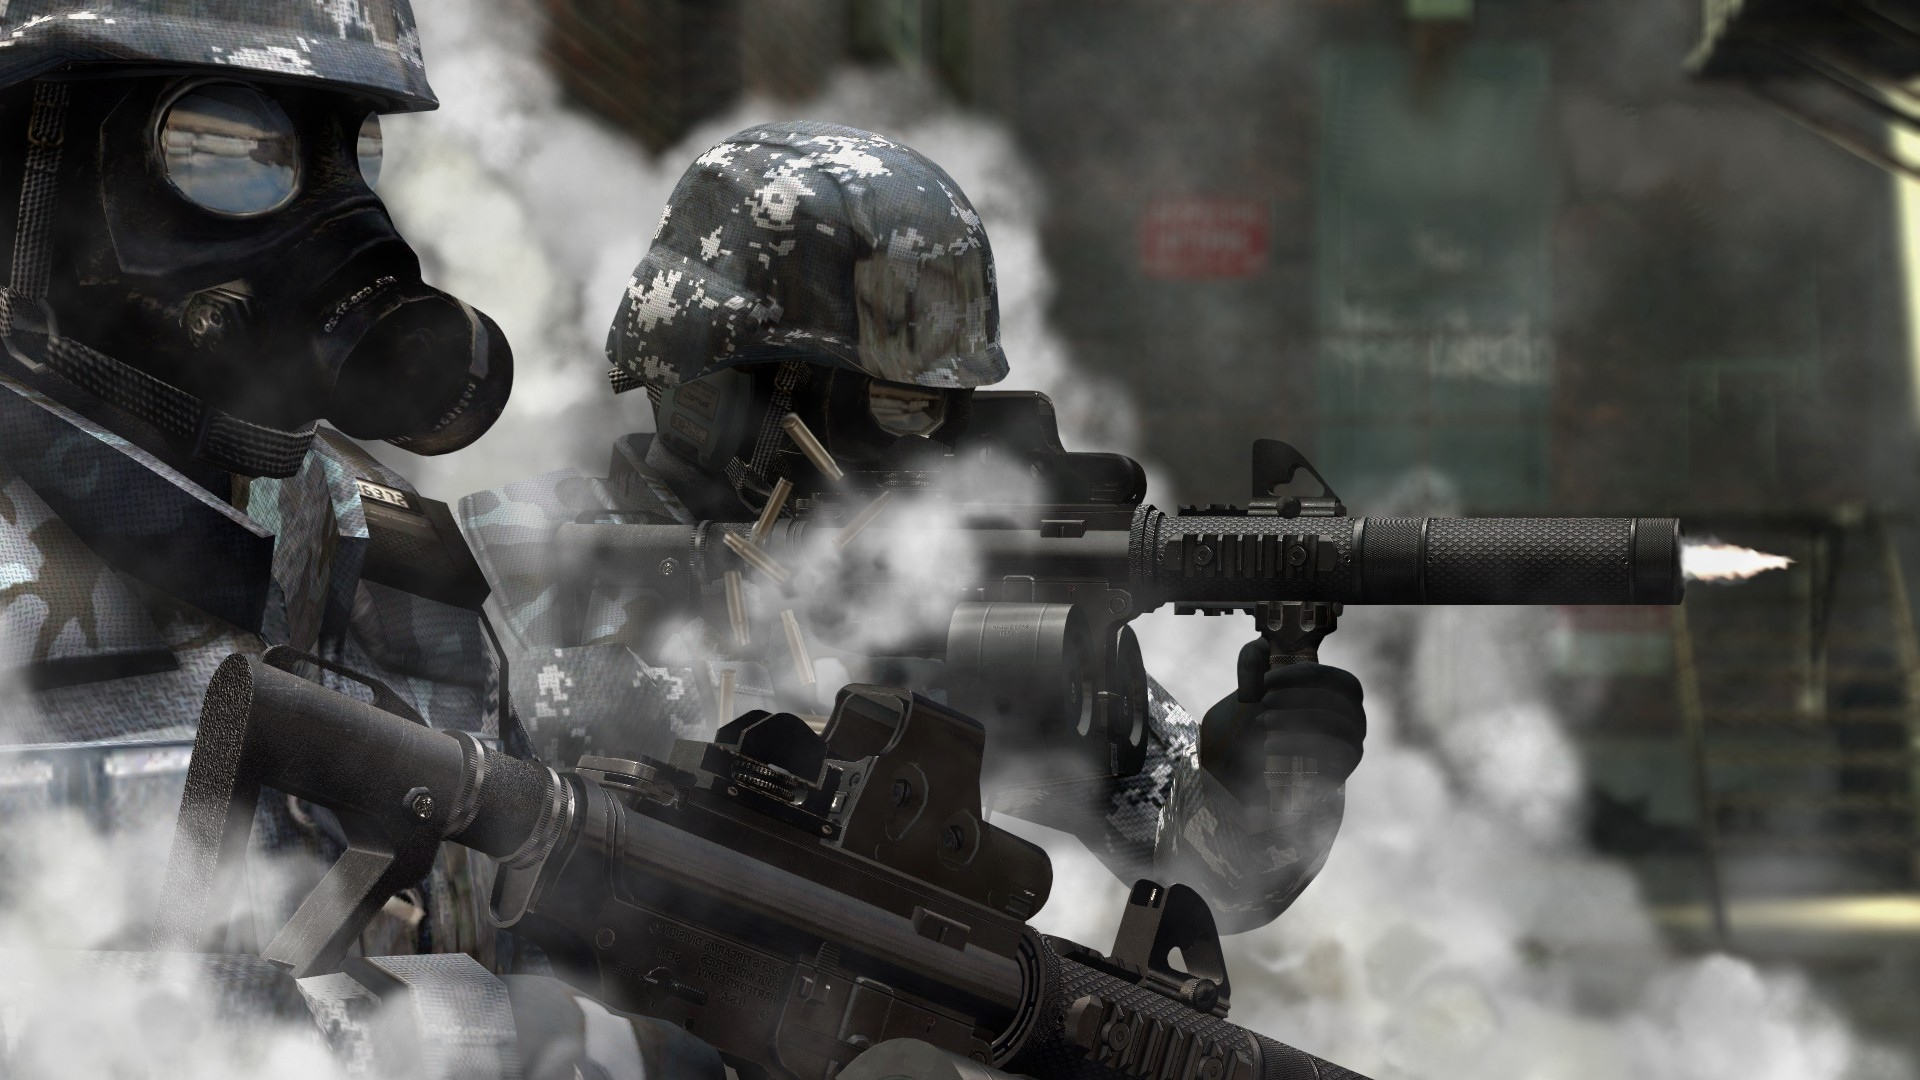 Adorable-Killzone-Soldiers-Gun-Shooting-Smoke-%C2%AB-Kuff-Games-wallpaper-wpc9002059